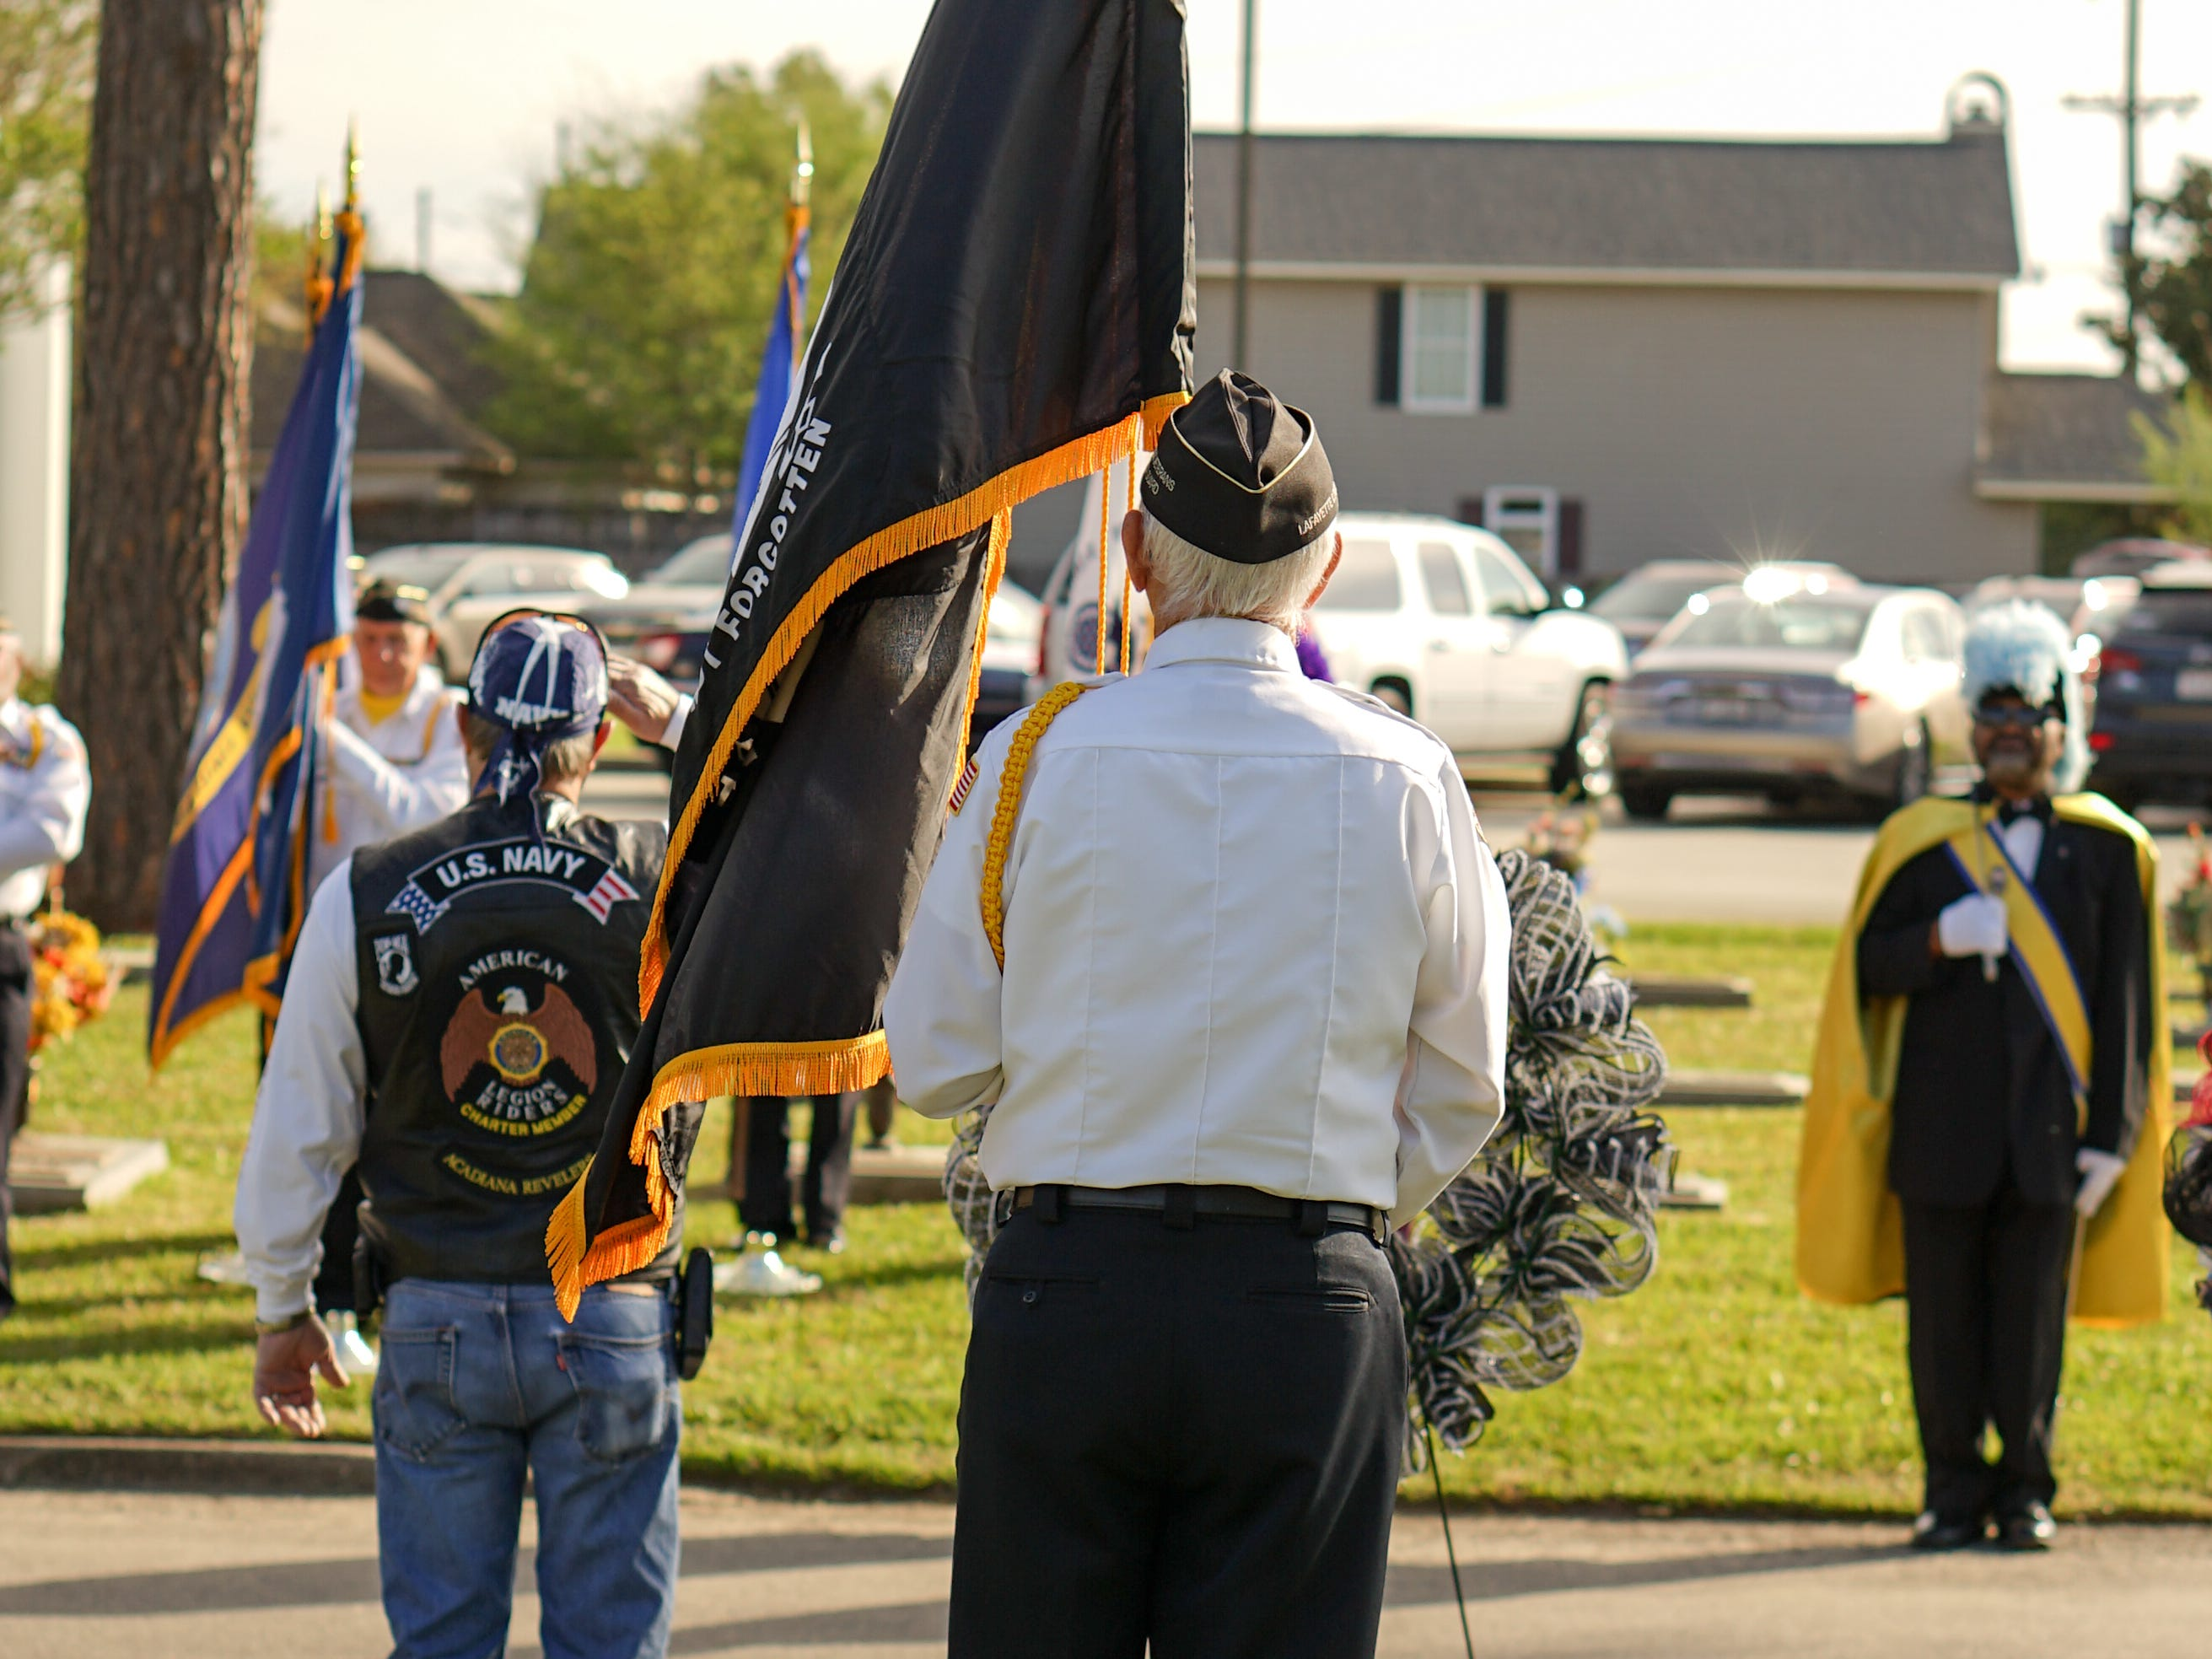 """Members of the Acadiana Veterans Honor Guard and onlookers stand before the memorial during the """"Welcome Home Vietnam Veterans"""" event at Fountain Memorial Funeral Home and Cemetery in Lafayette on Friday, March 29, 2019."""